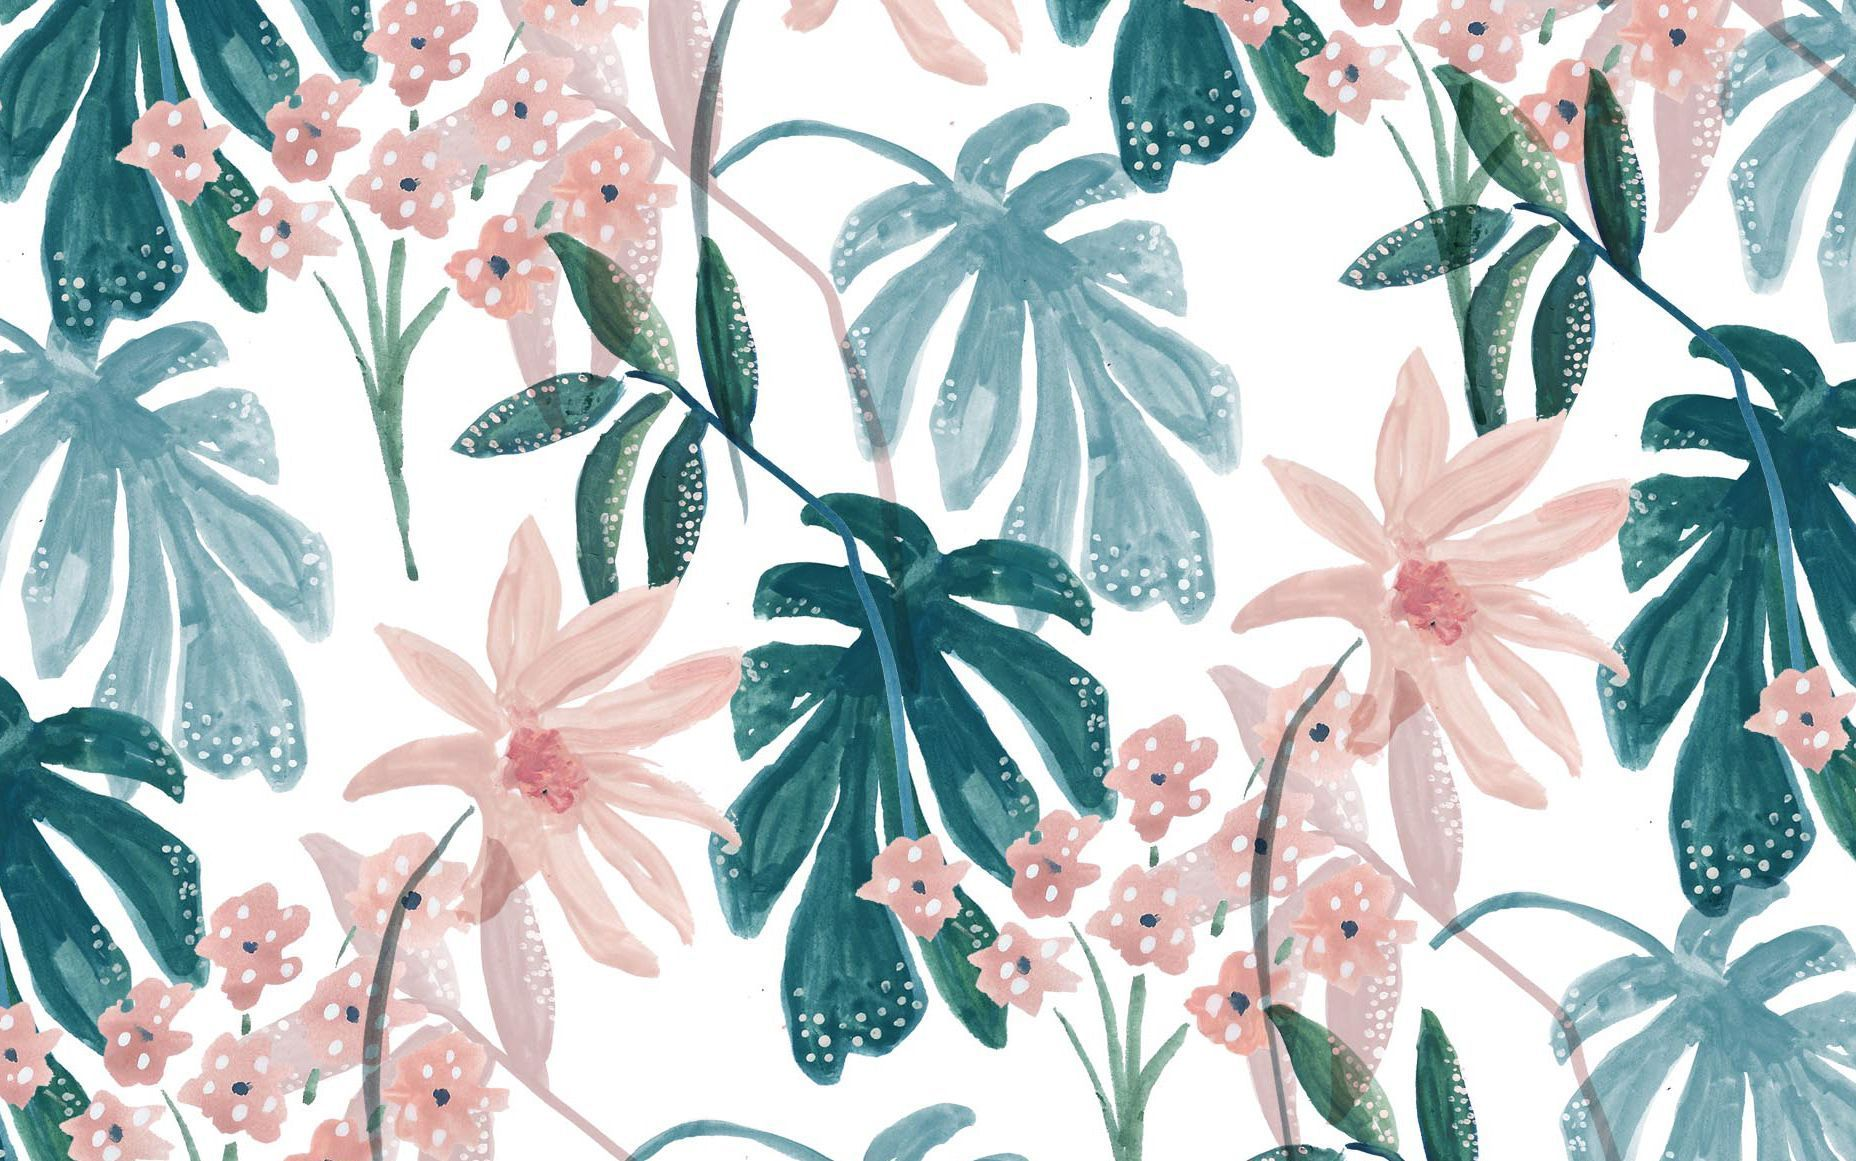 1856x1161 Pin By Pinelopi Zoura On Illustrations And Textures Pinterest Marble Desktop Wallpaper Laptop Wallpaper Macbook Wallpaper